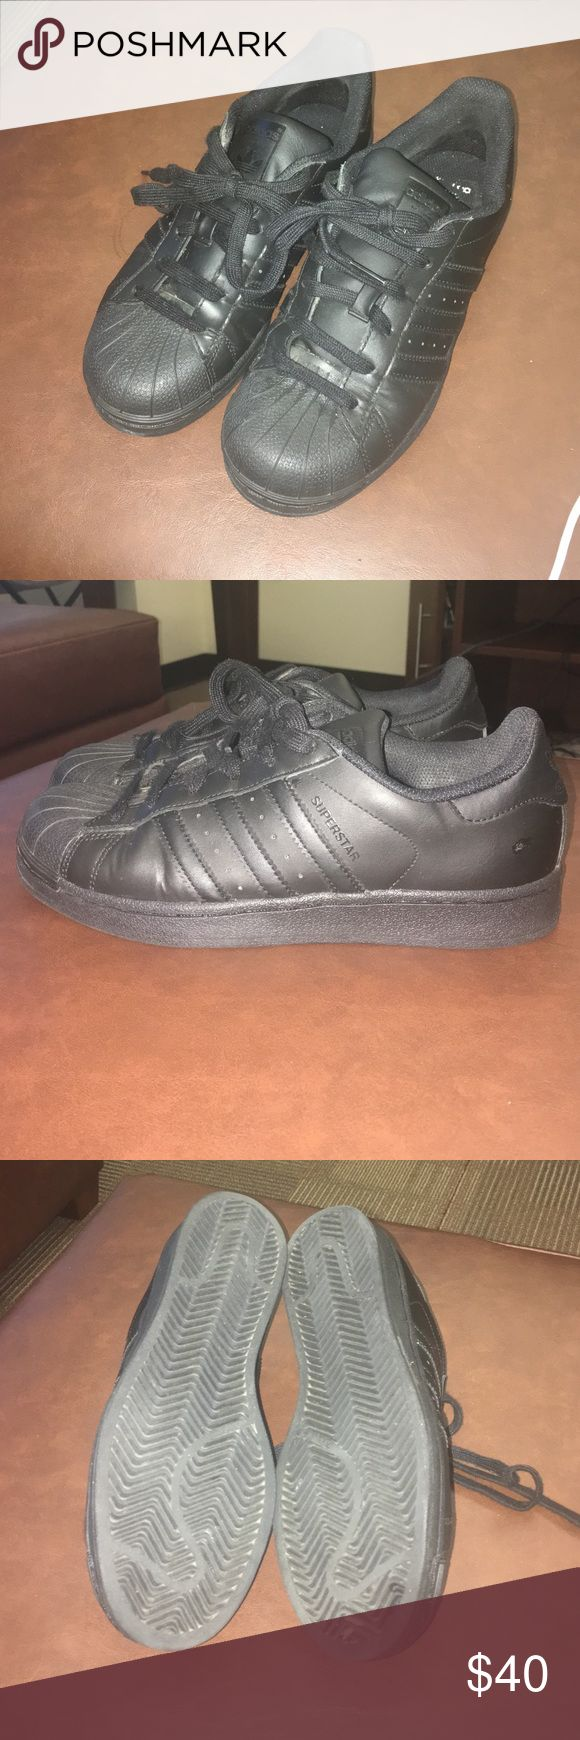 Adidas Superstar All black Adidas Superstar shoe. Youth 5 1/2 or womens 8. Minimal wear. Really awesome show, goes with everything Adidas Shoes Sneakers